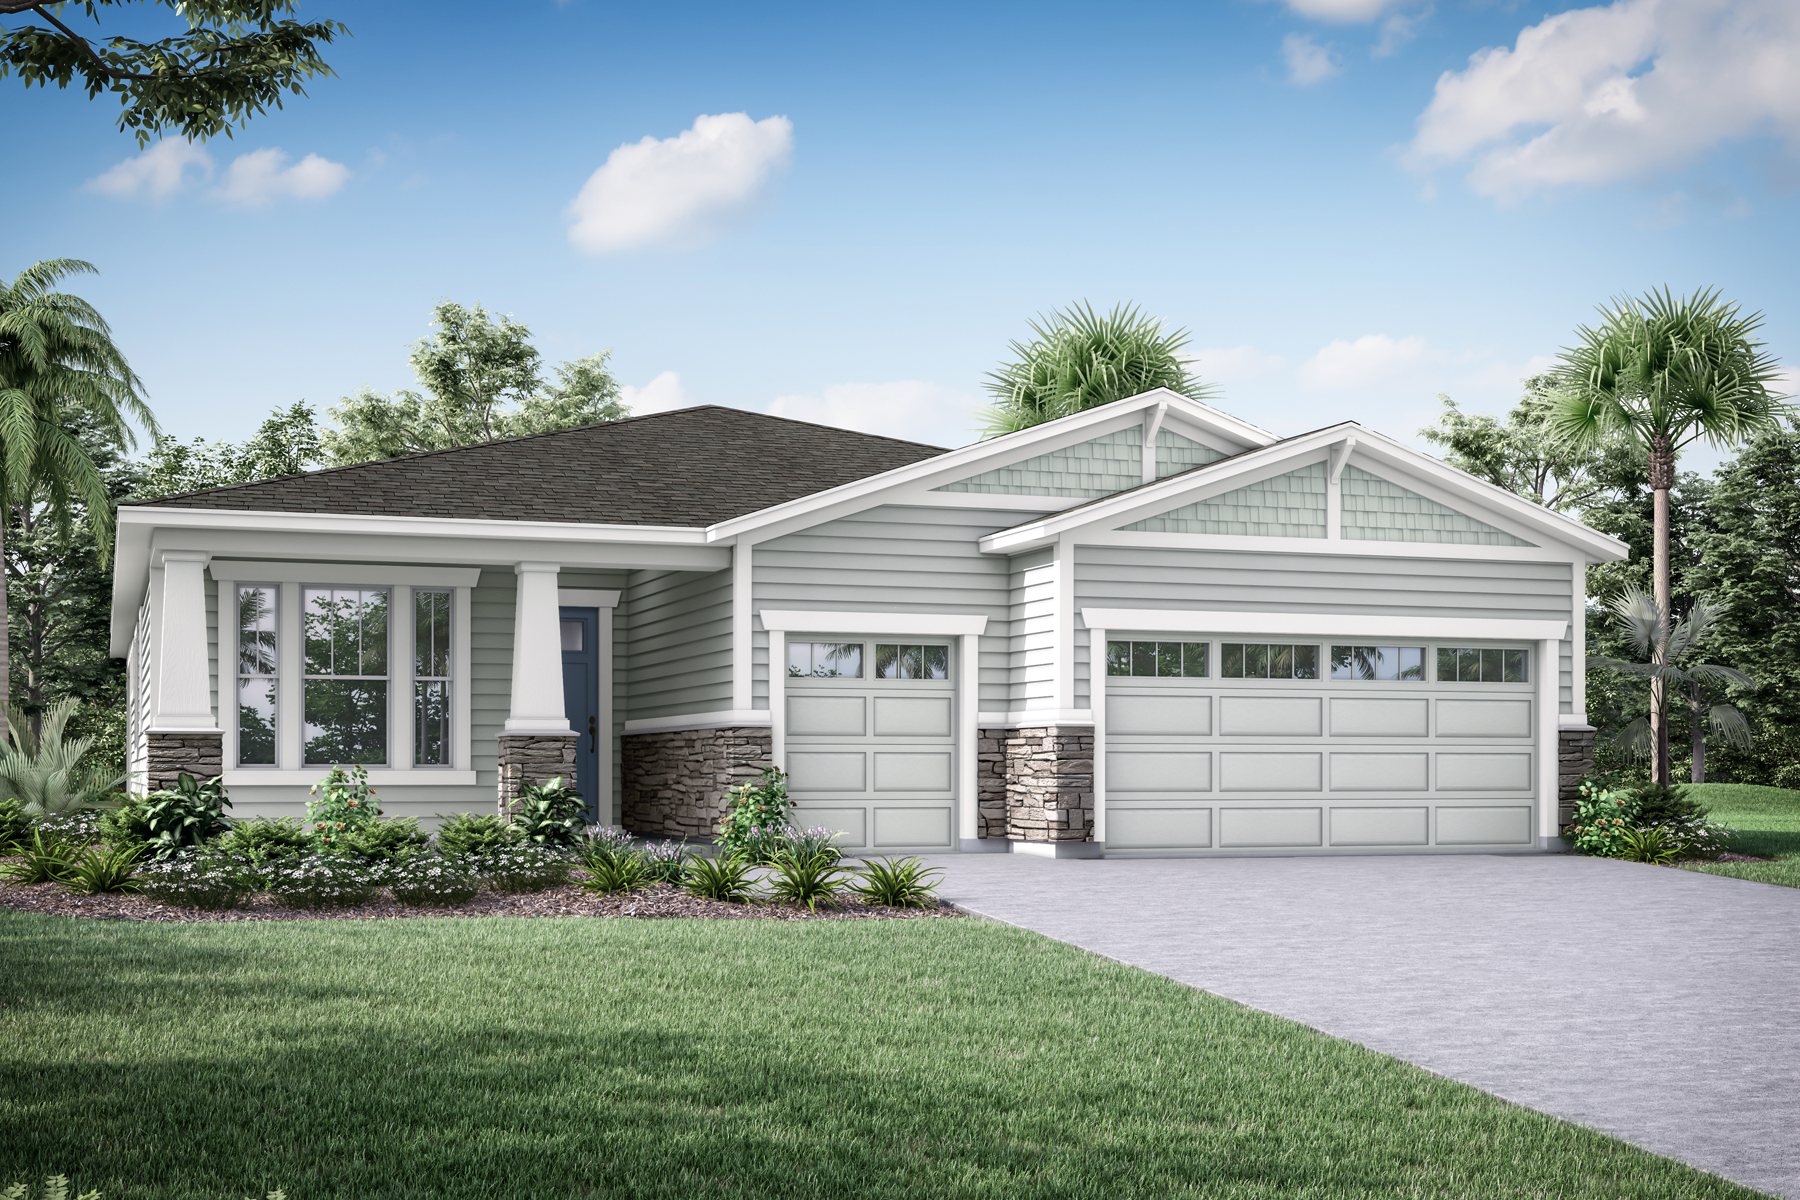 Harbor Plan jax_watersong_harbor_craftsman at RiverTown - WaterSong in St. Johns Florida by Mattamy Homes